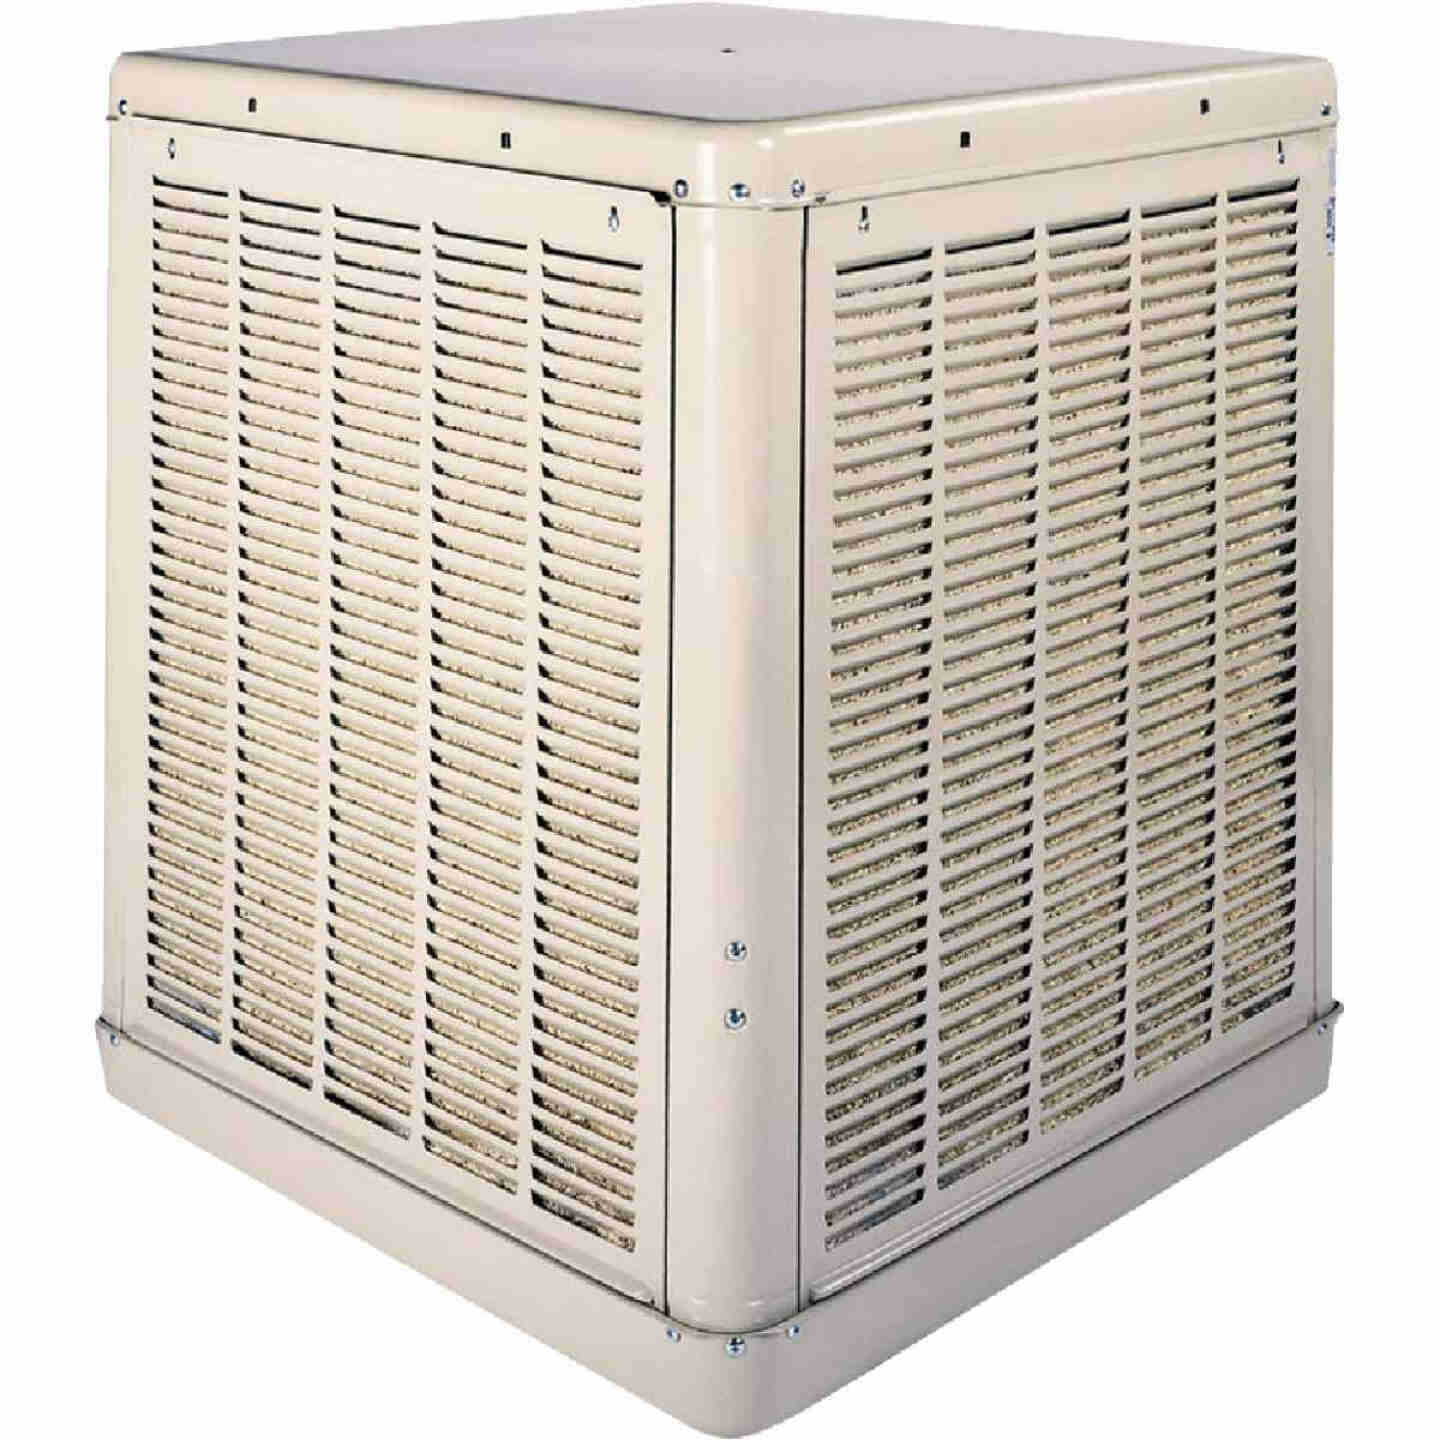 Essick 2240 to 4900 CFM Down Discharge Whole House Aspen Media Residential Evaporative Cooler, 800-1800 Sq. Ft. Image 1